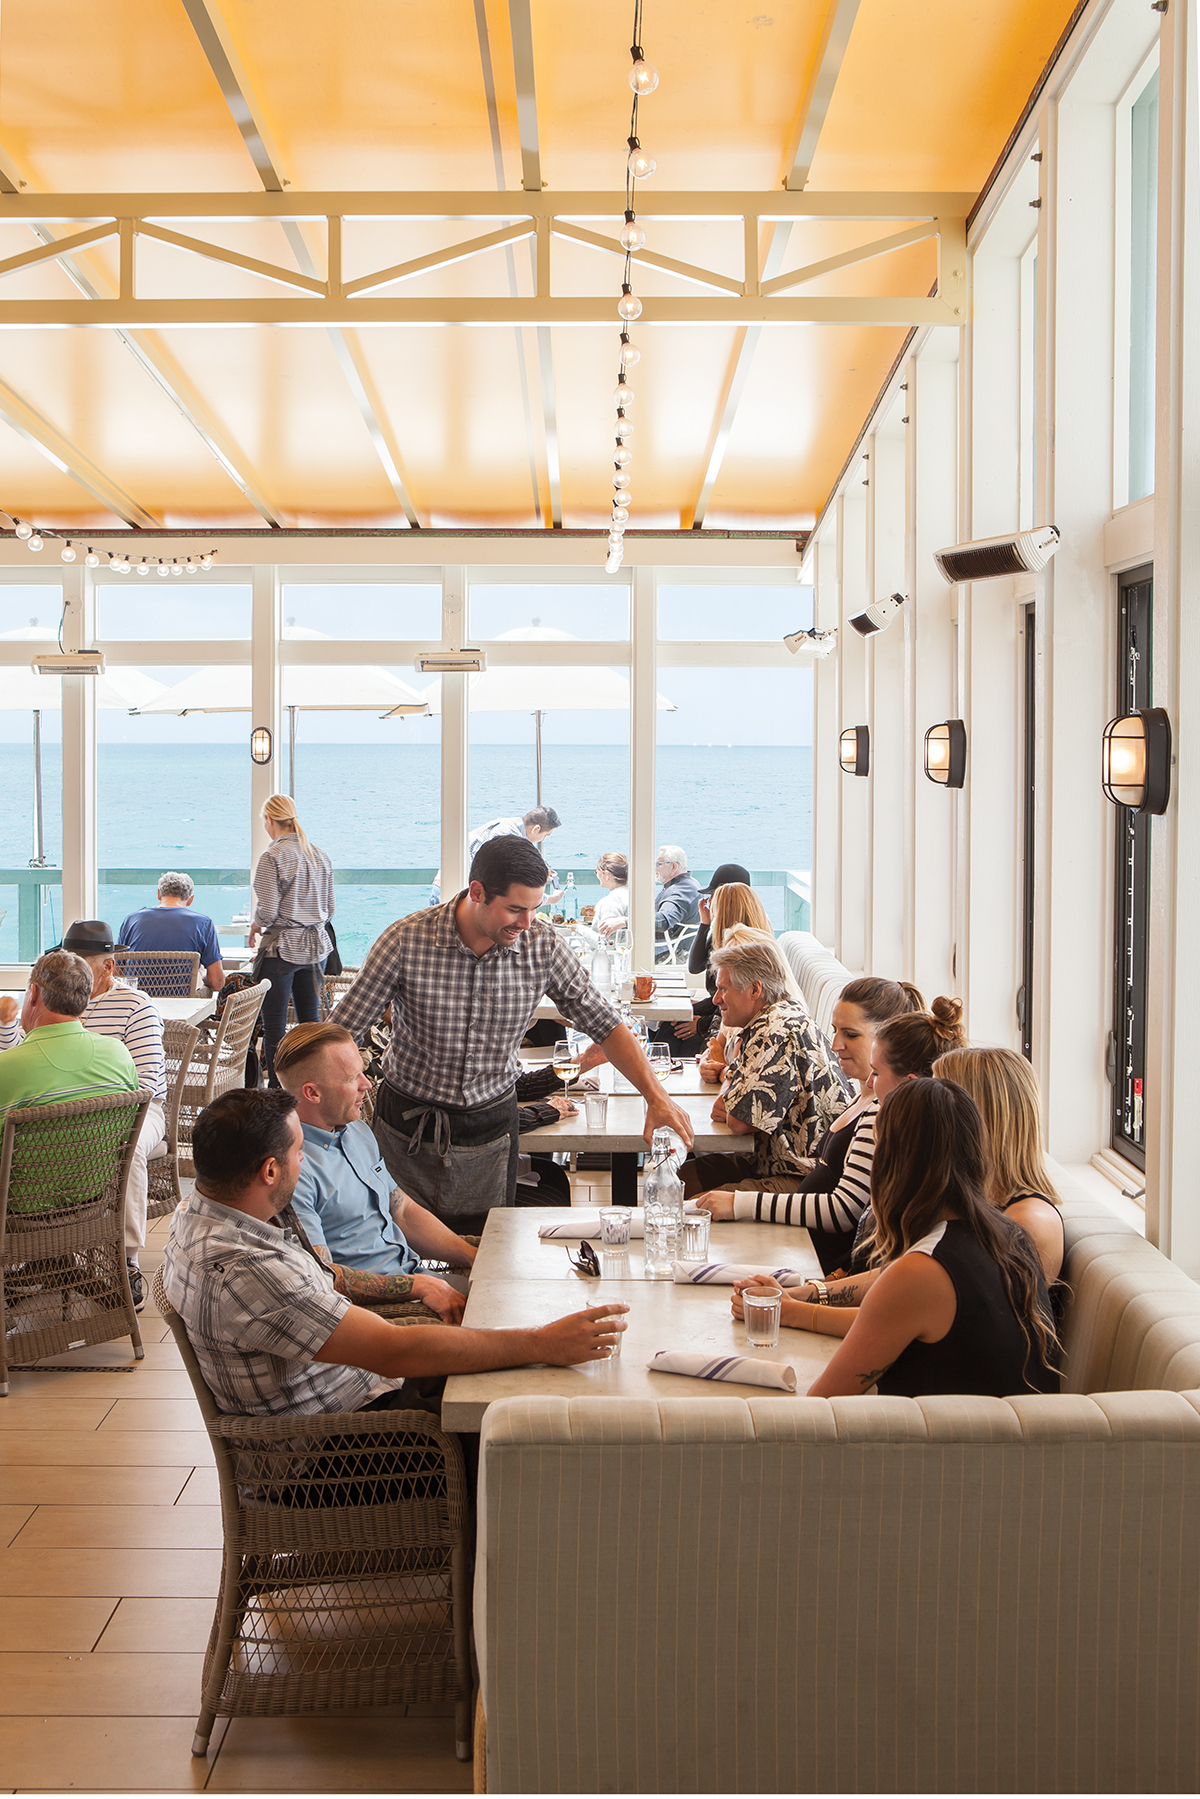 driftwood kitchen: with a view like this, does the food really